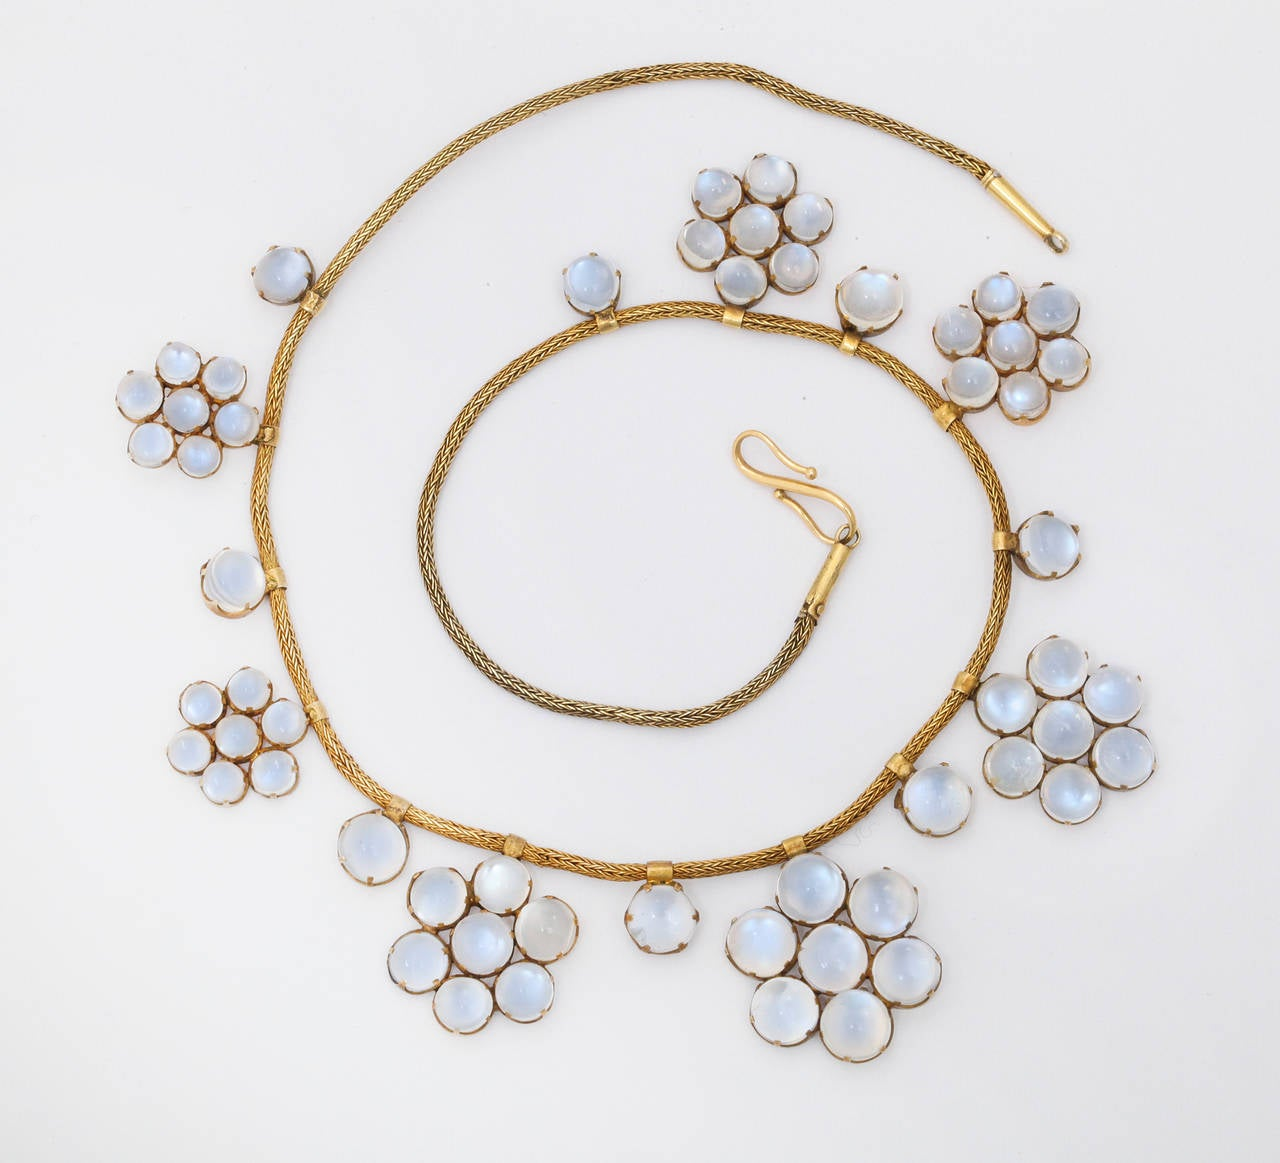 This wonderful necklace is an extraordinary example of delicacy and superior workmanship.  Each of the 57 cabochon moonstones has been expertly set and attached to the necklace- seeming to float weightlessly over the neckline.  Finding such a